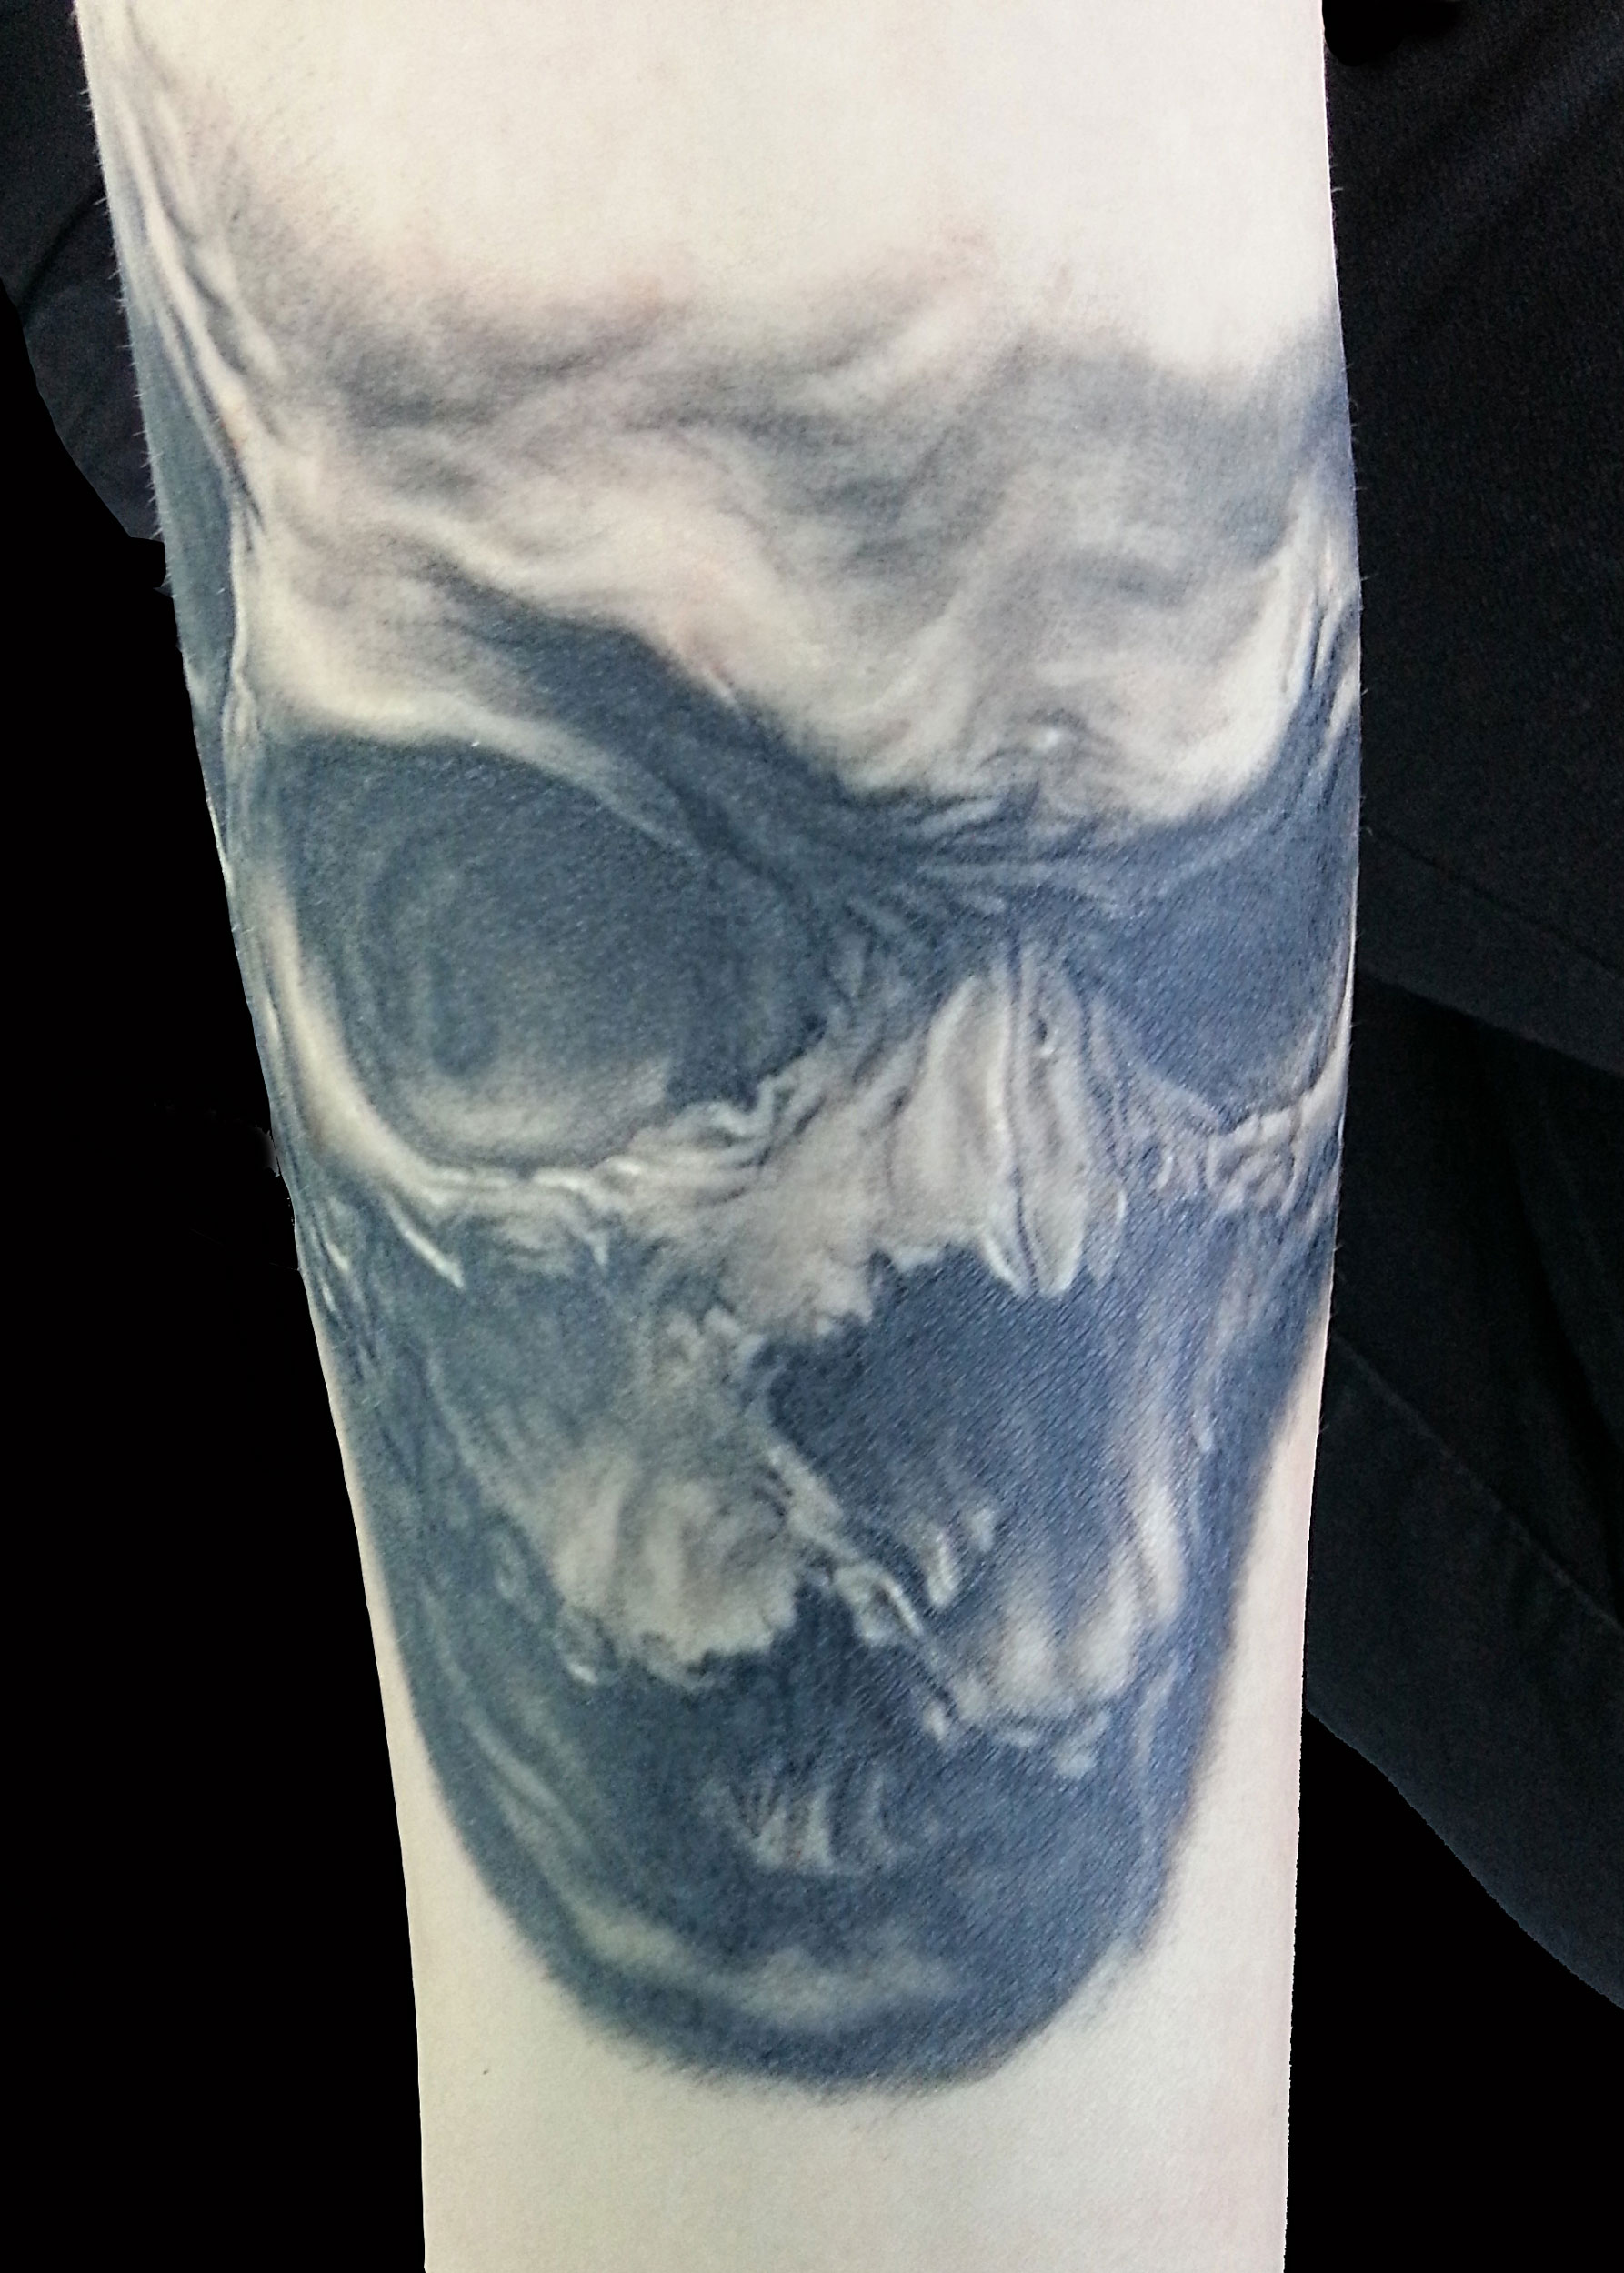 Black and Grey Evil Skull Realistic Horror Tattoo, (healed)